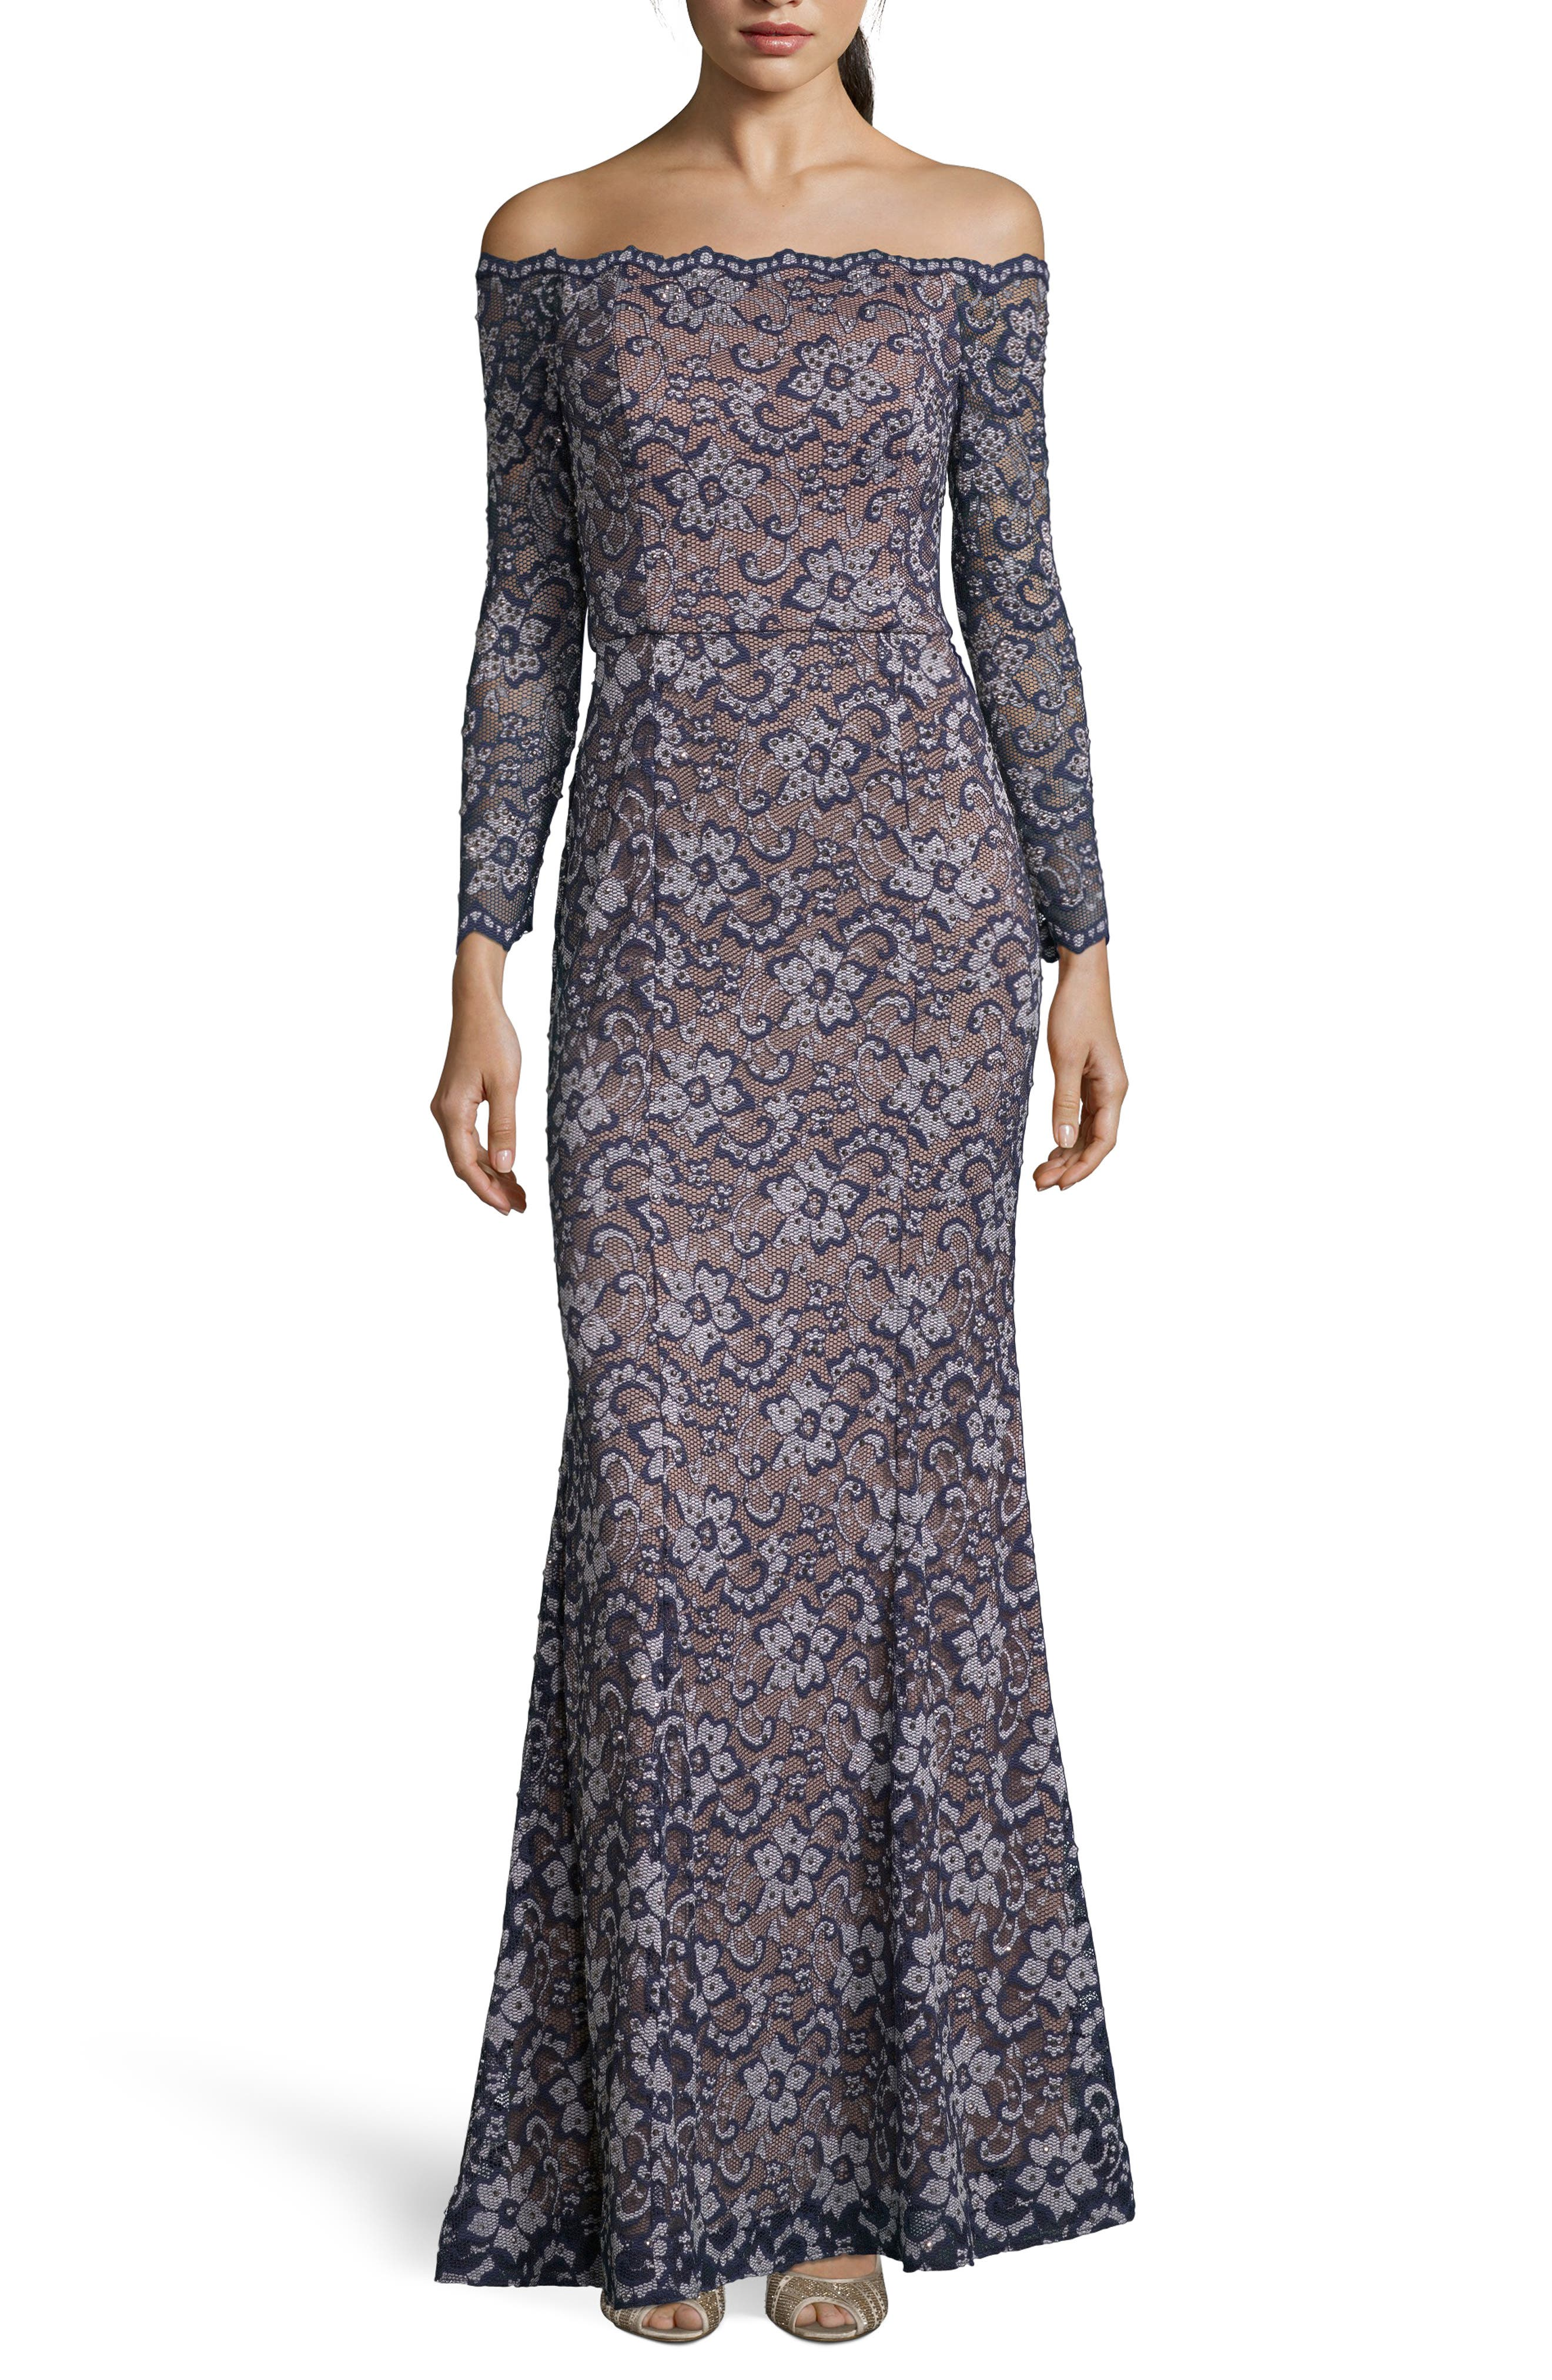 XSCAPE,                             Off the Shoulder Lace Evening Dress,                             Main thumbnail 1, color,                             NAVY/ NUDE